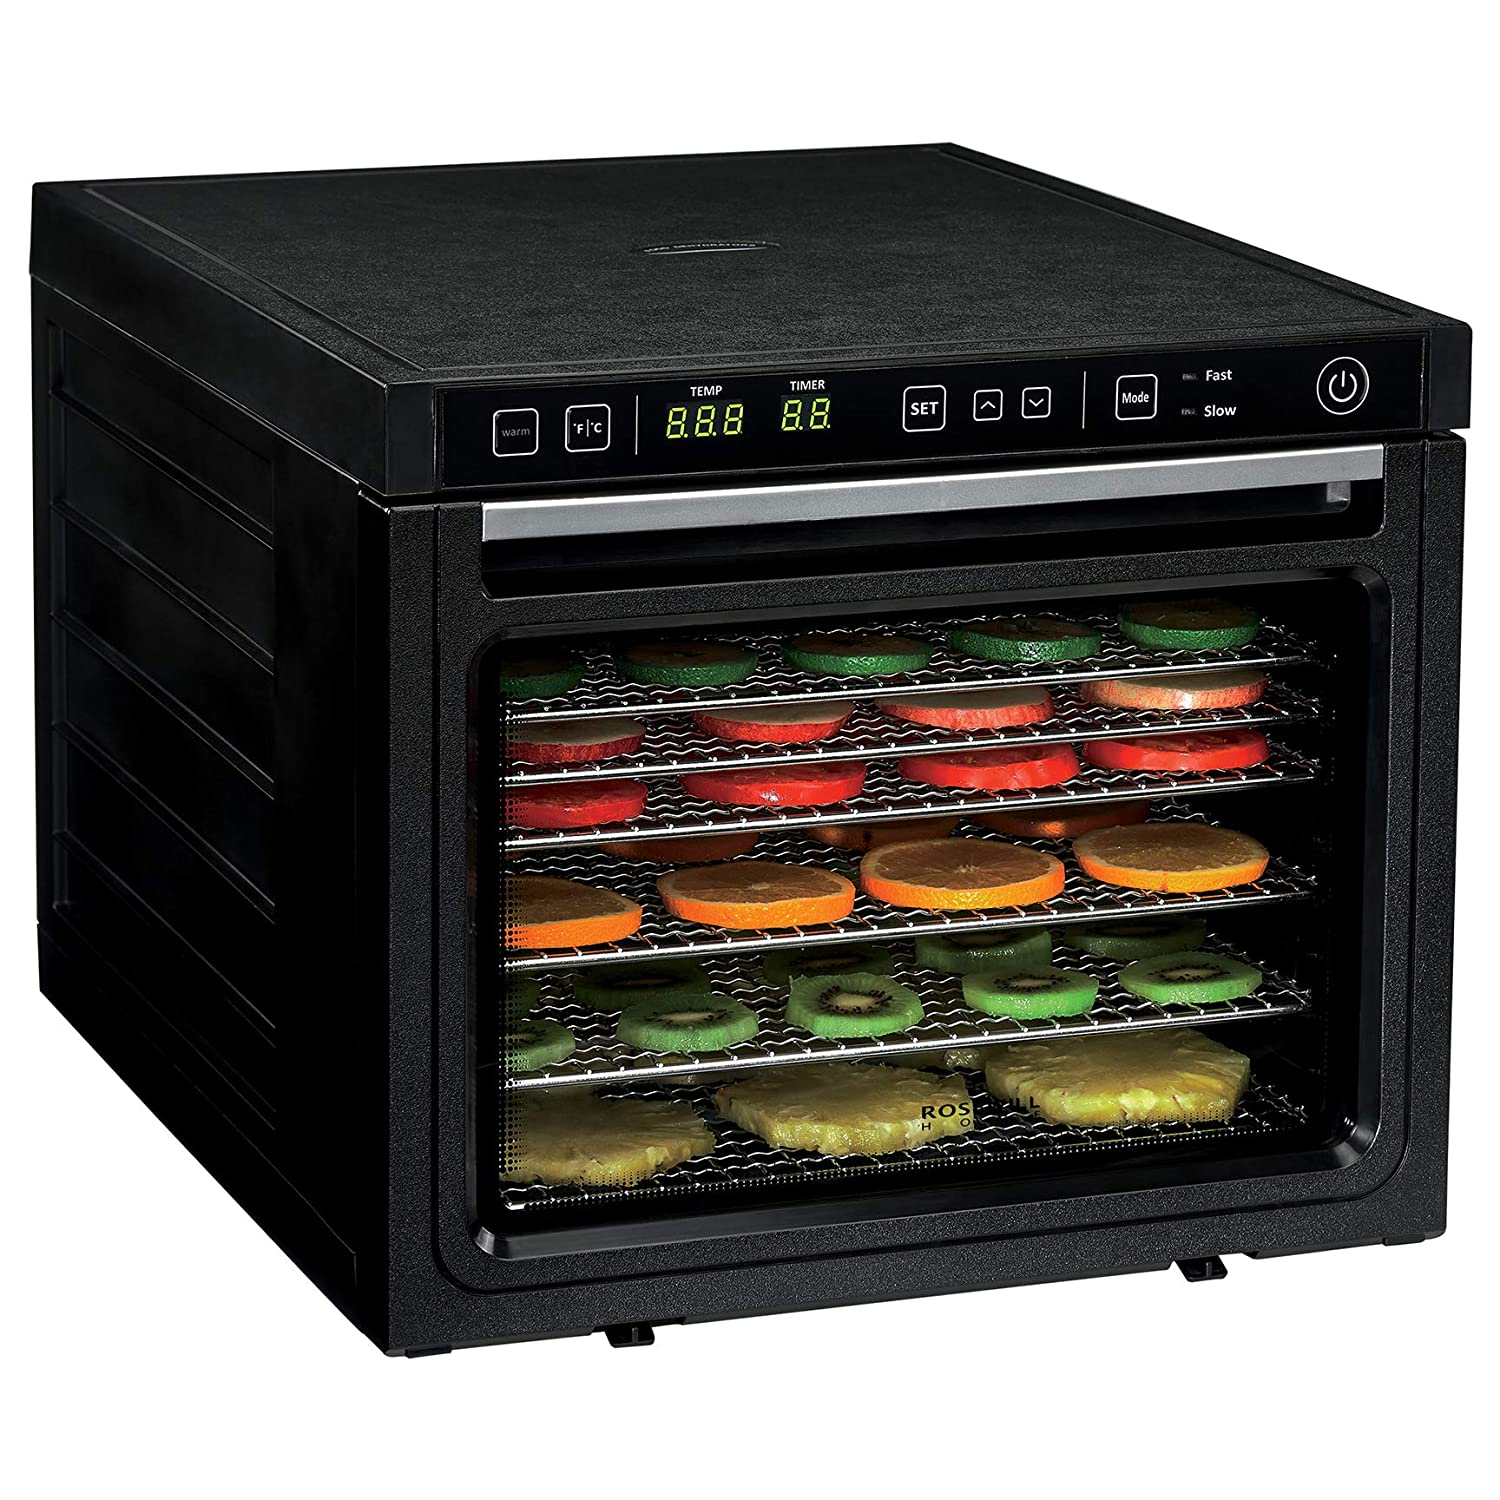 Rosewill RHFD-18001 Black Professional Food Dehydrator